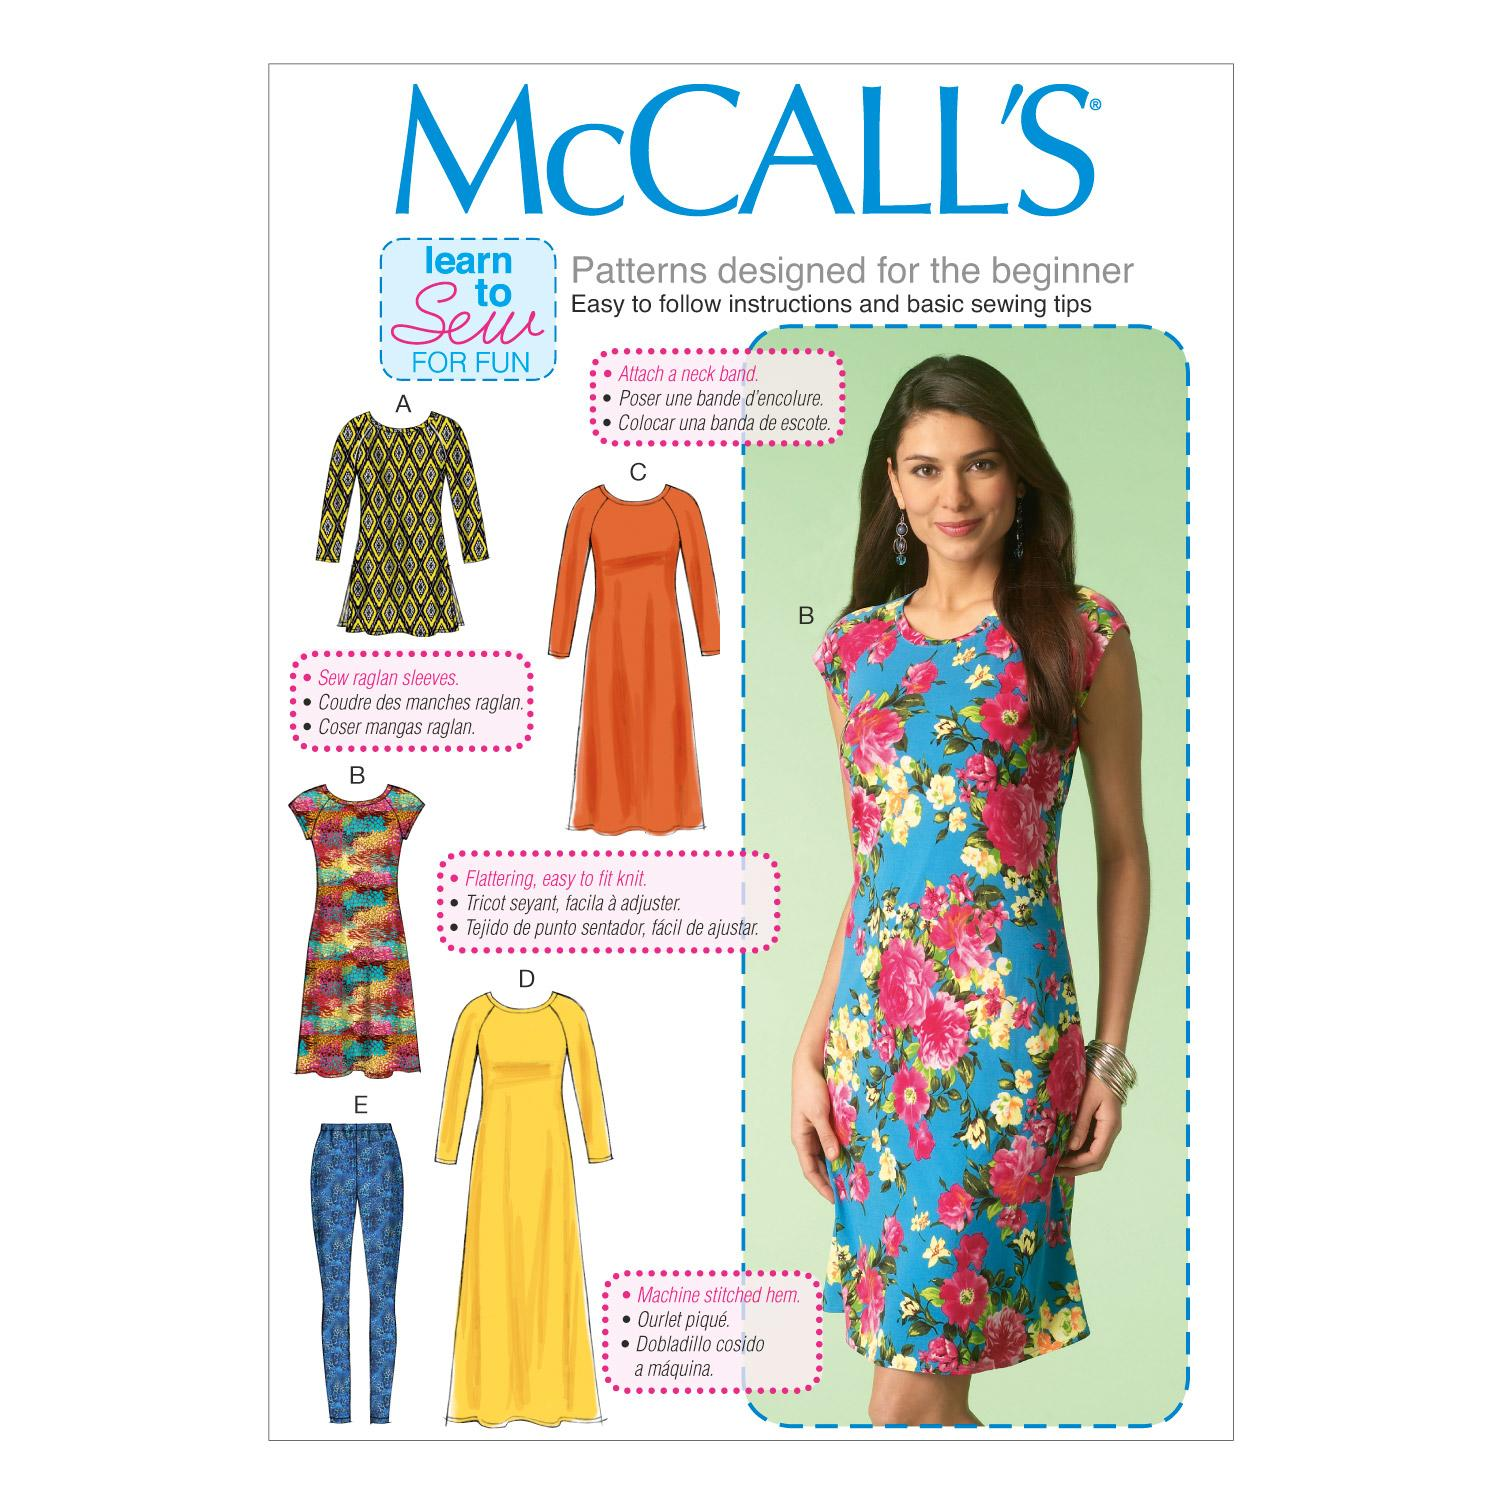 McCalls M7122 Dresses, Learn To Sew for Fun